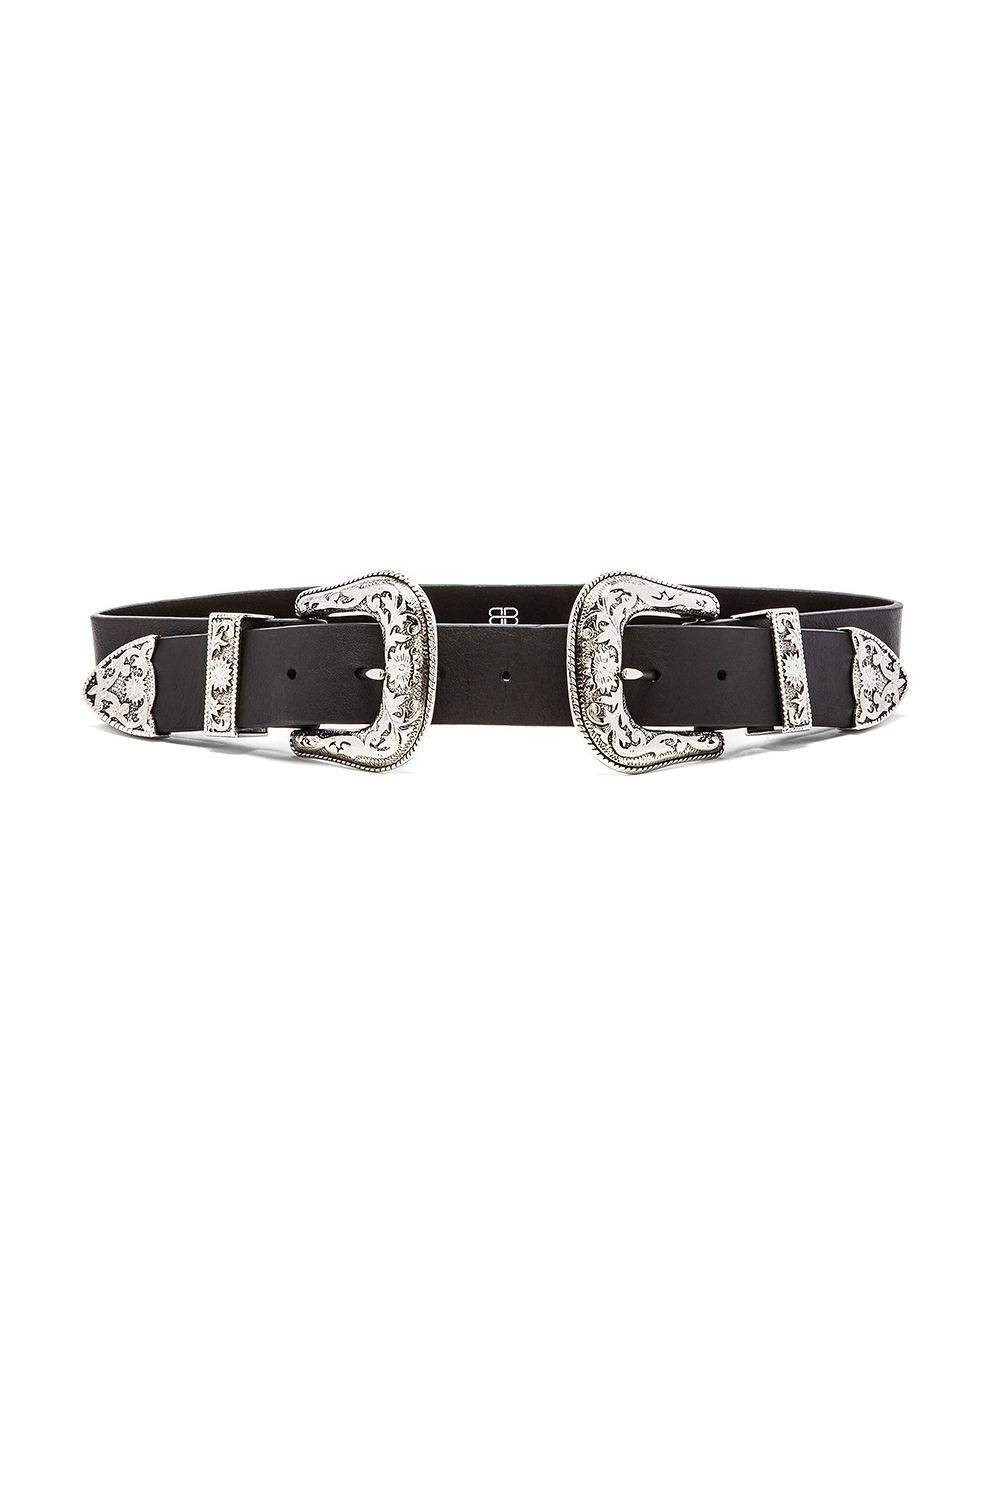 B- LOW THE BELT Bri Bri Black/Silver